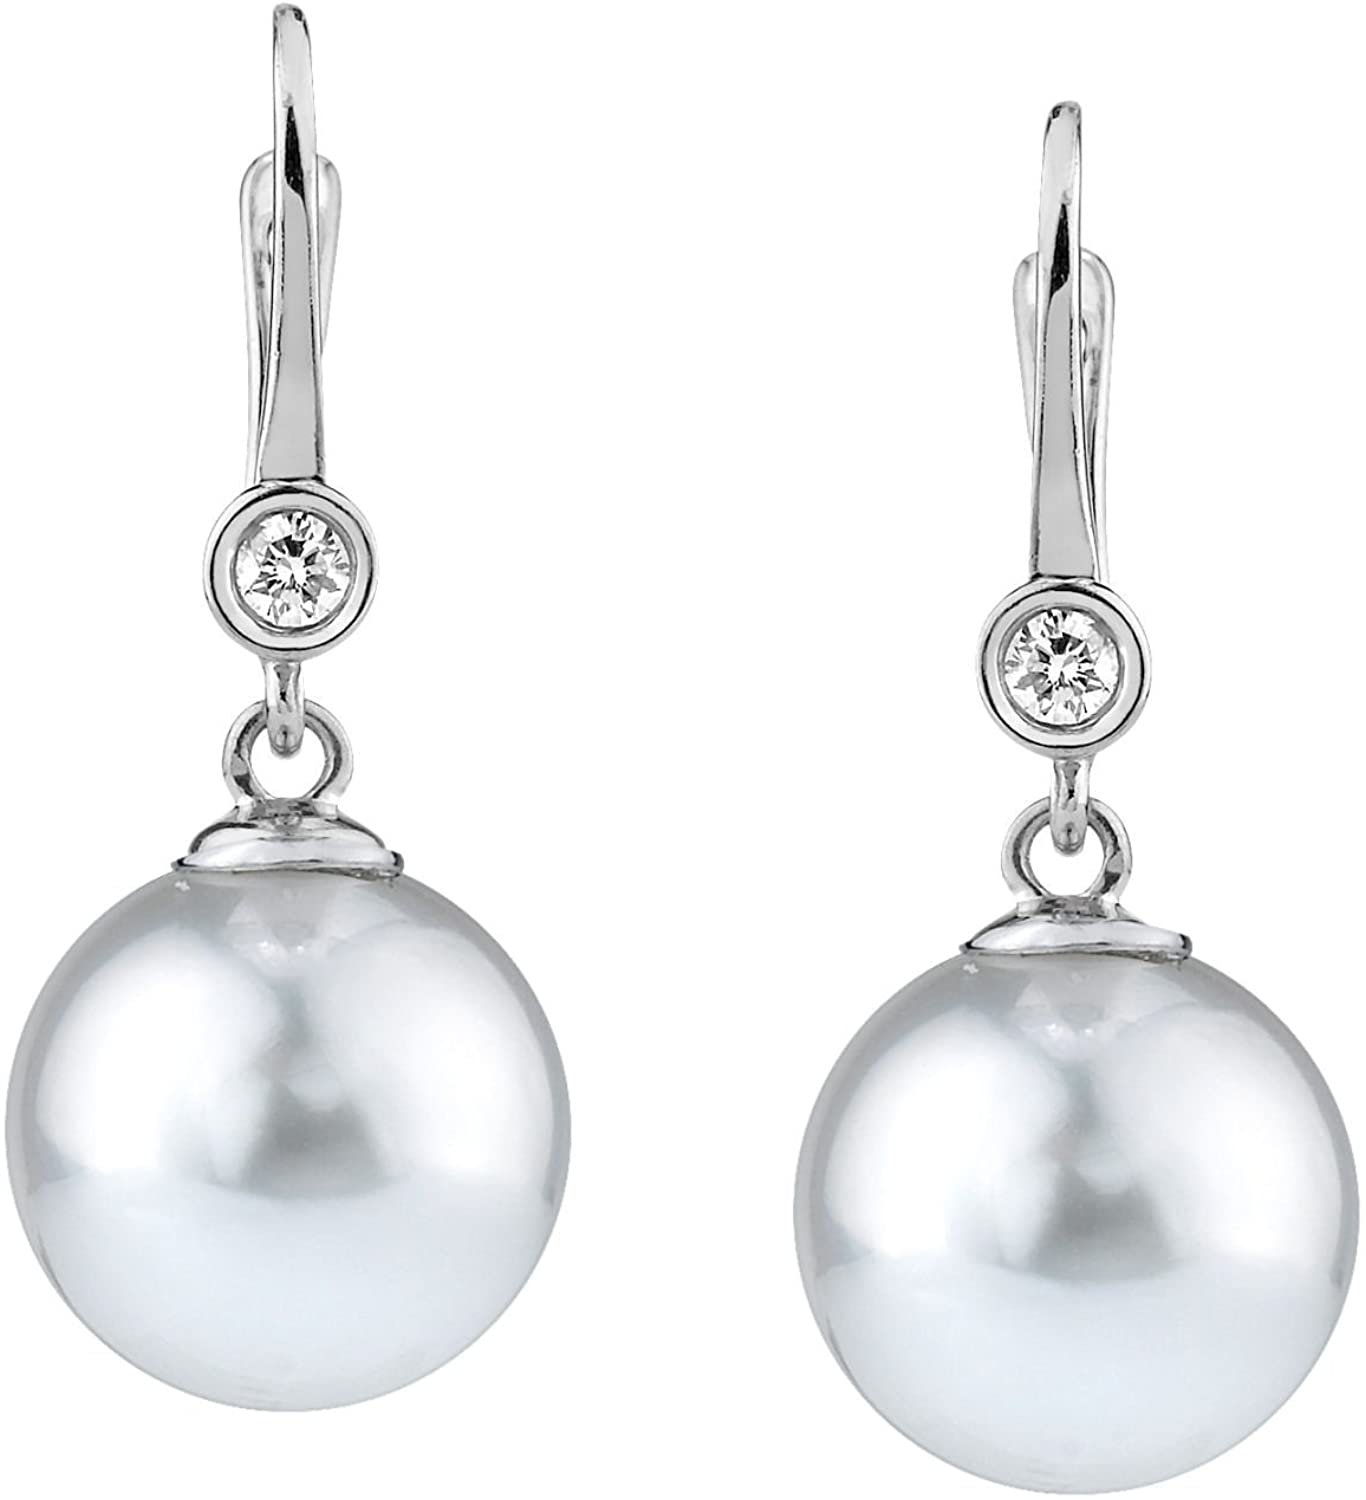 THE PEARL SOURCE 14K Gold Round Genuine White Freshwater Cultured Pearl & Diamond Michelle Earrings for Women